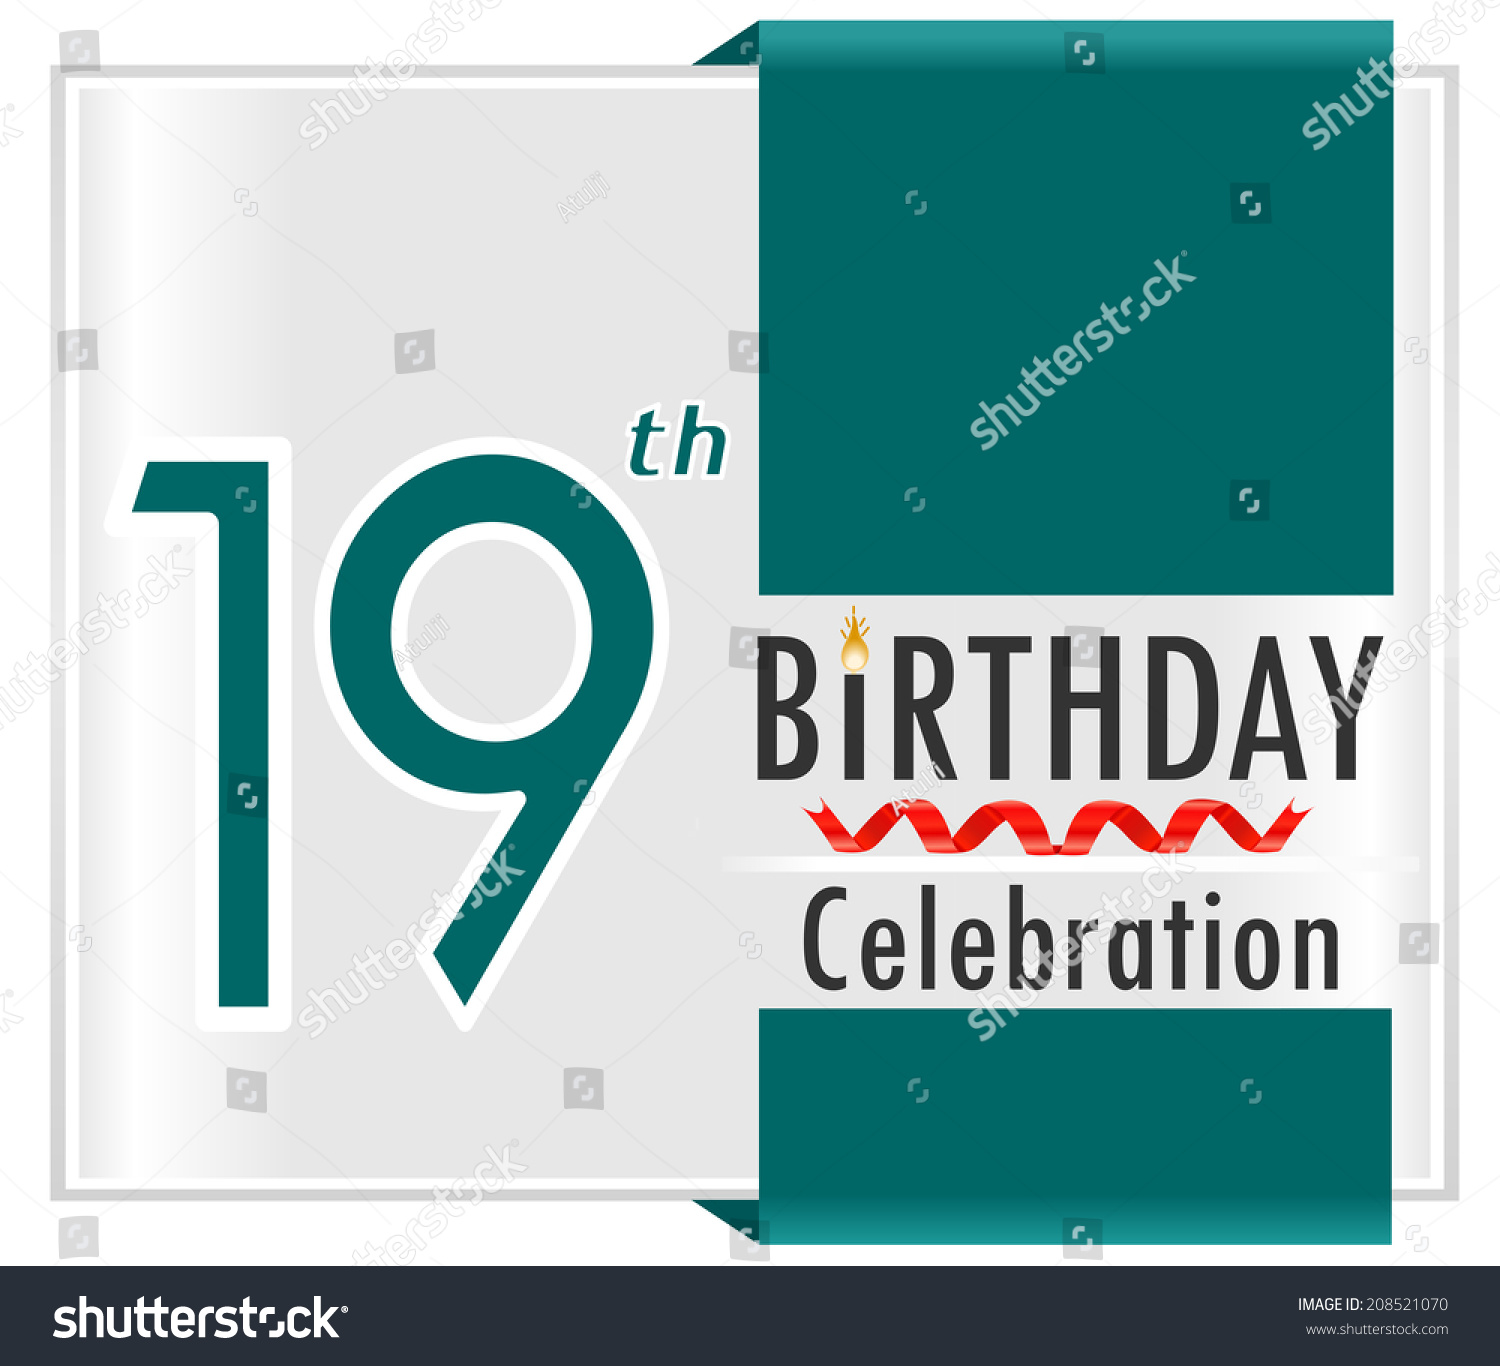 19th Birthday 19 Year Celebration Card With Vibrant